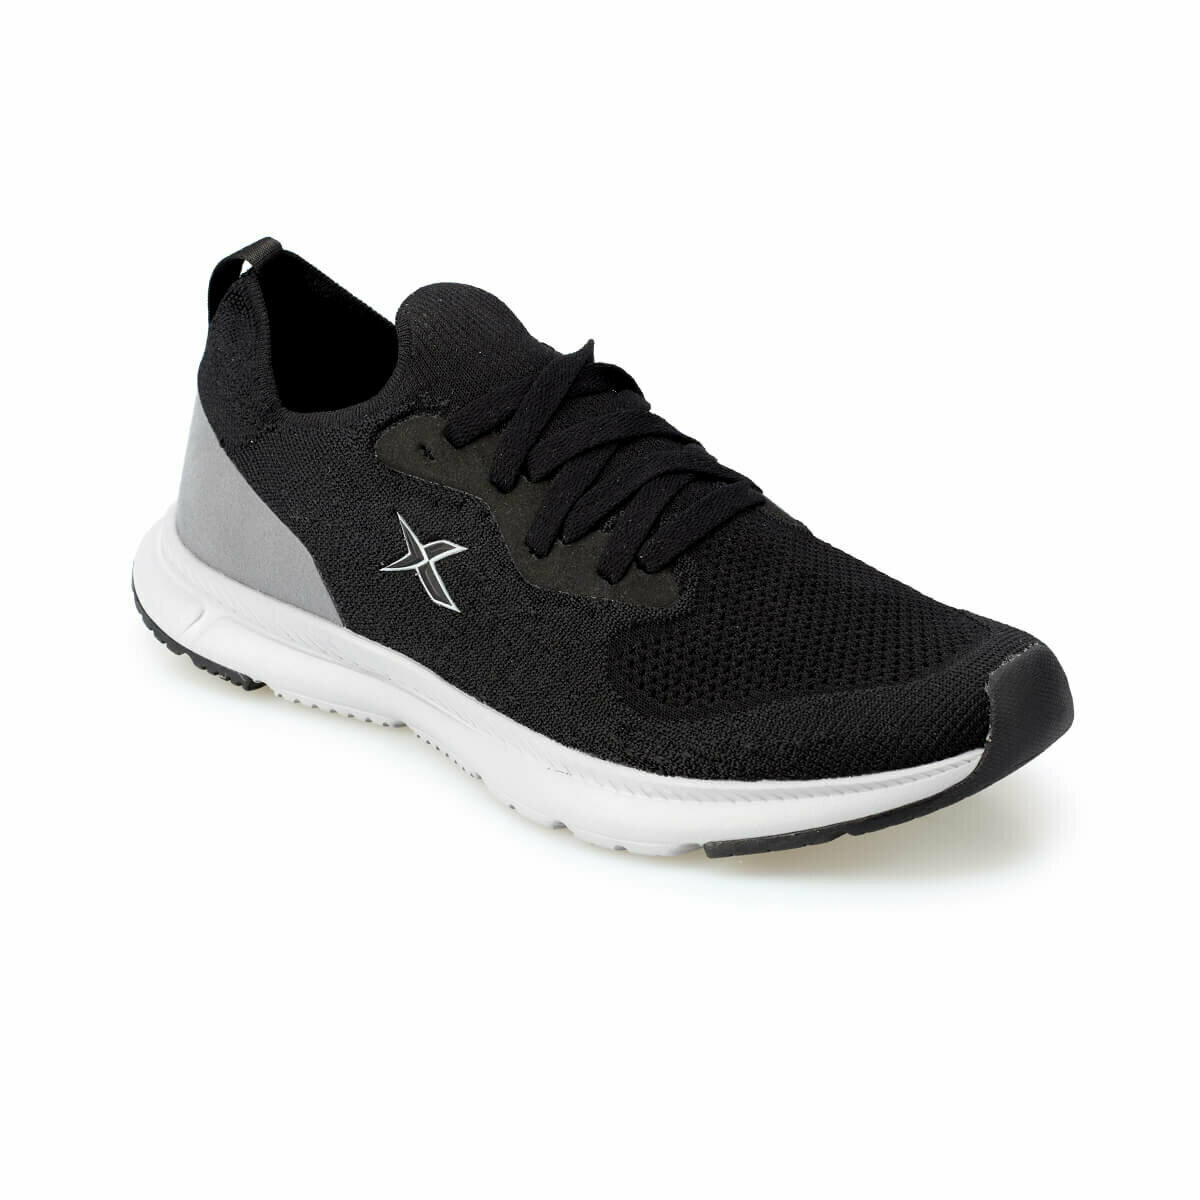 FLO CORSA Black Men 'S Running Shoe KINETIX